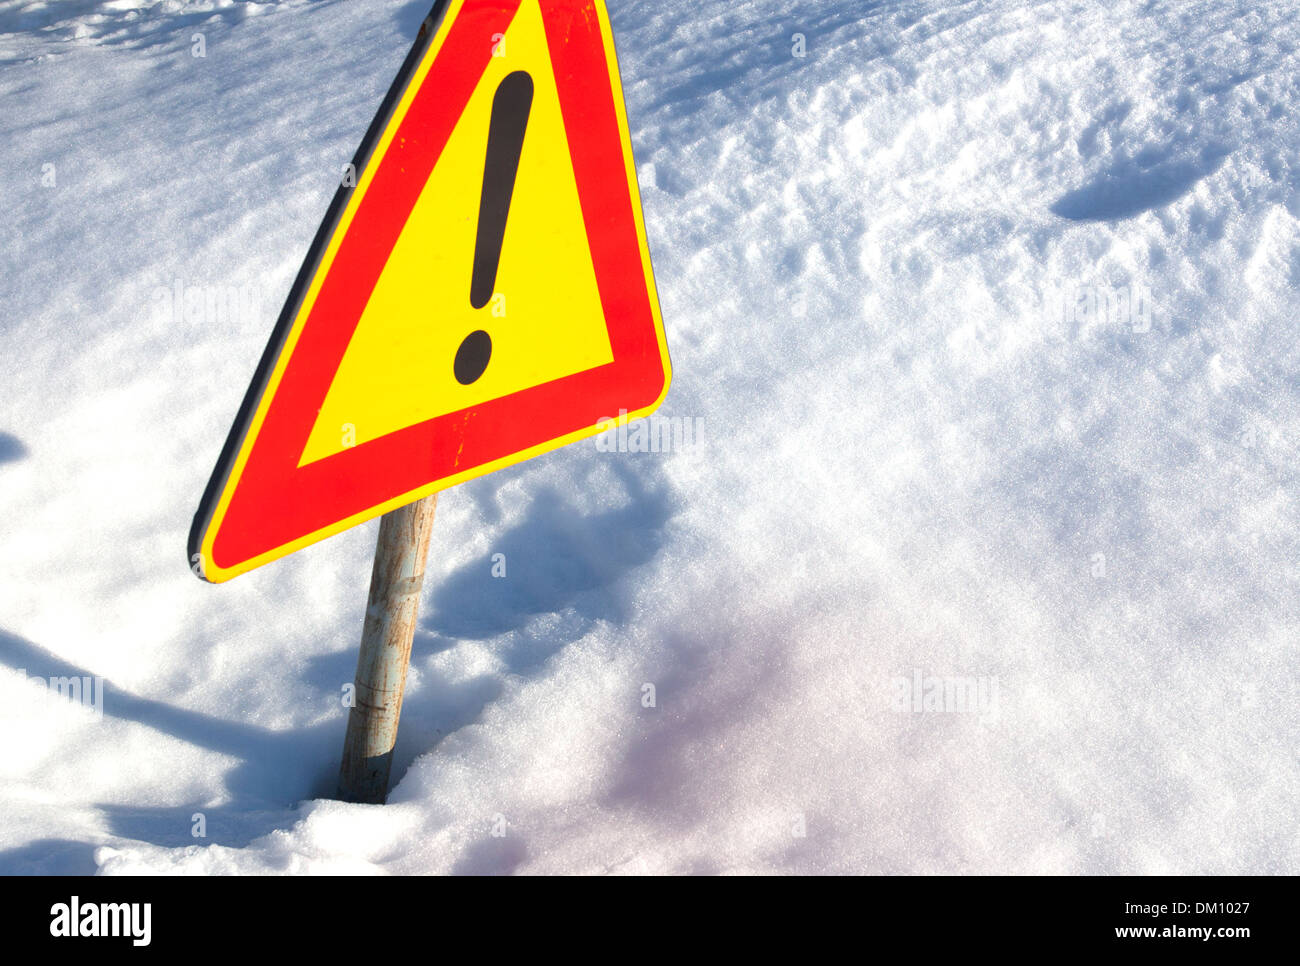 Warning sign and snow. Exclamation mark. - Stock Image